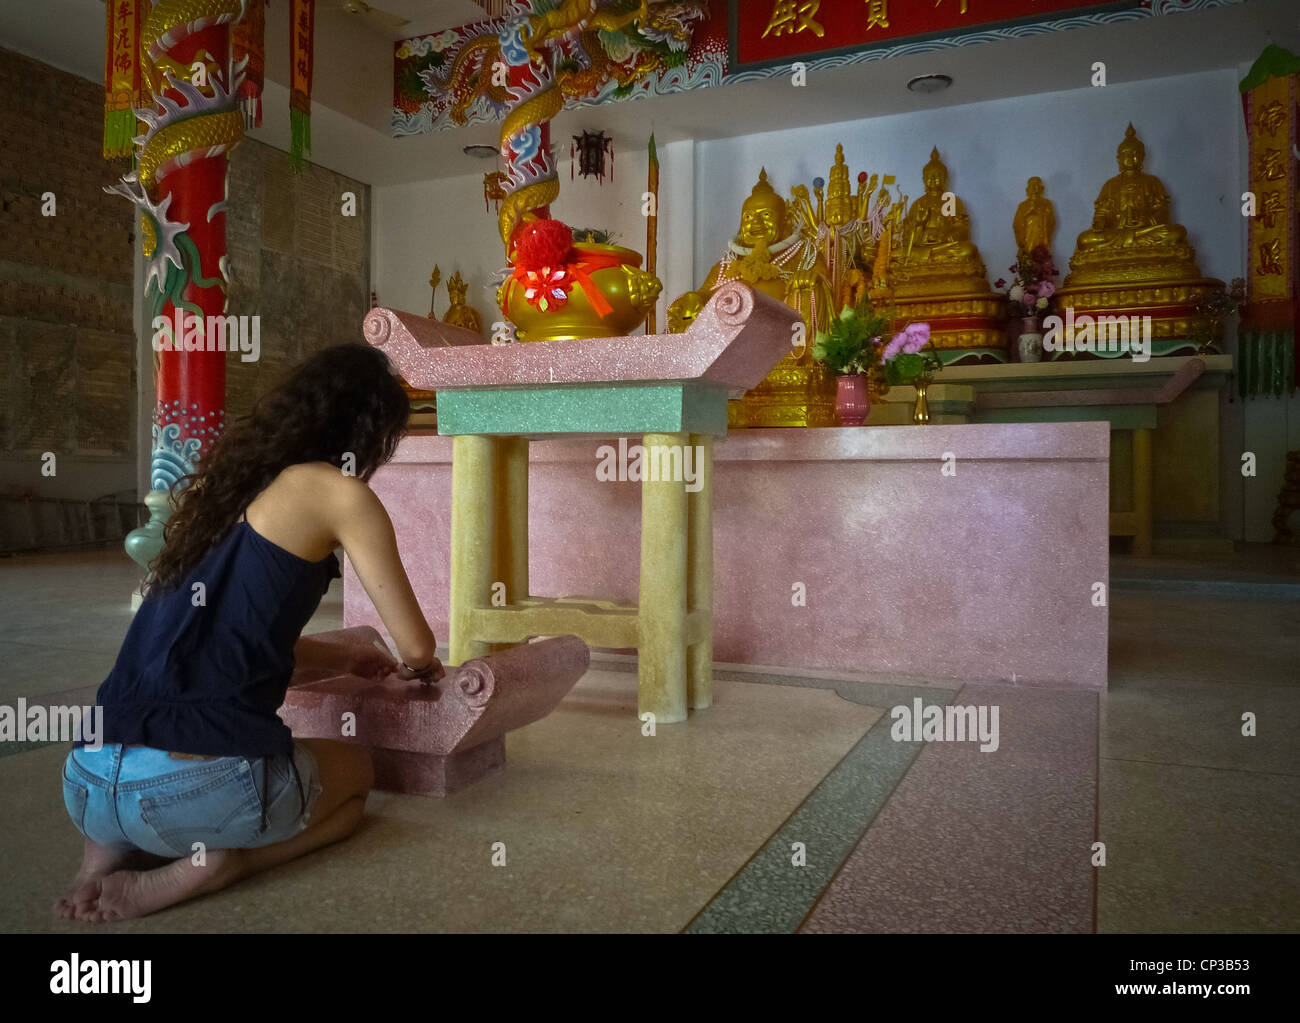 a073fc7189 Back View Chinese Woman Praying Stock Photos   Back View Chinese ...